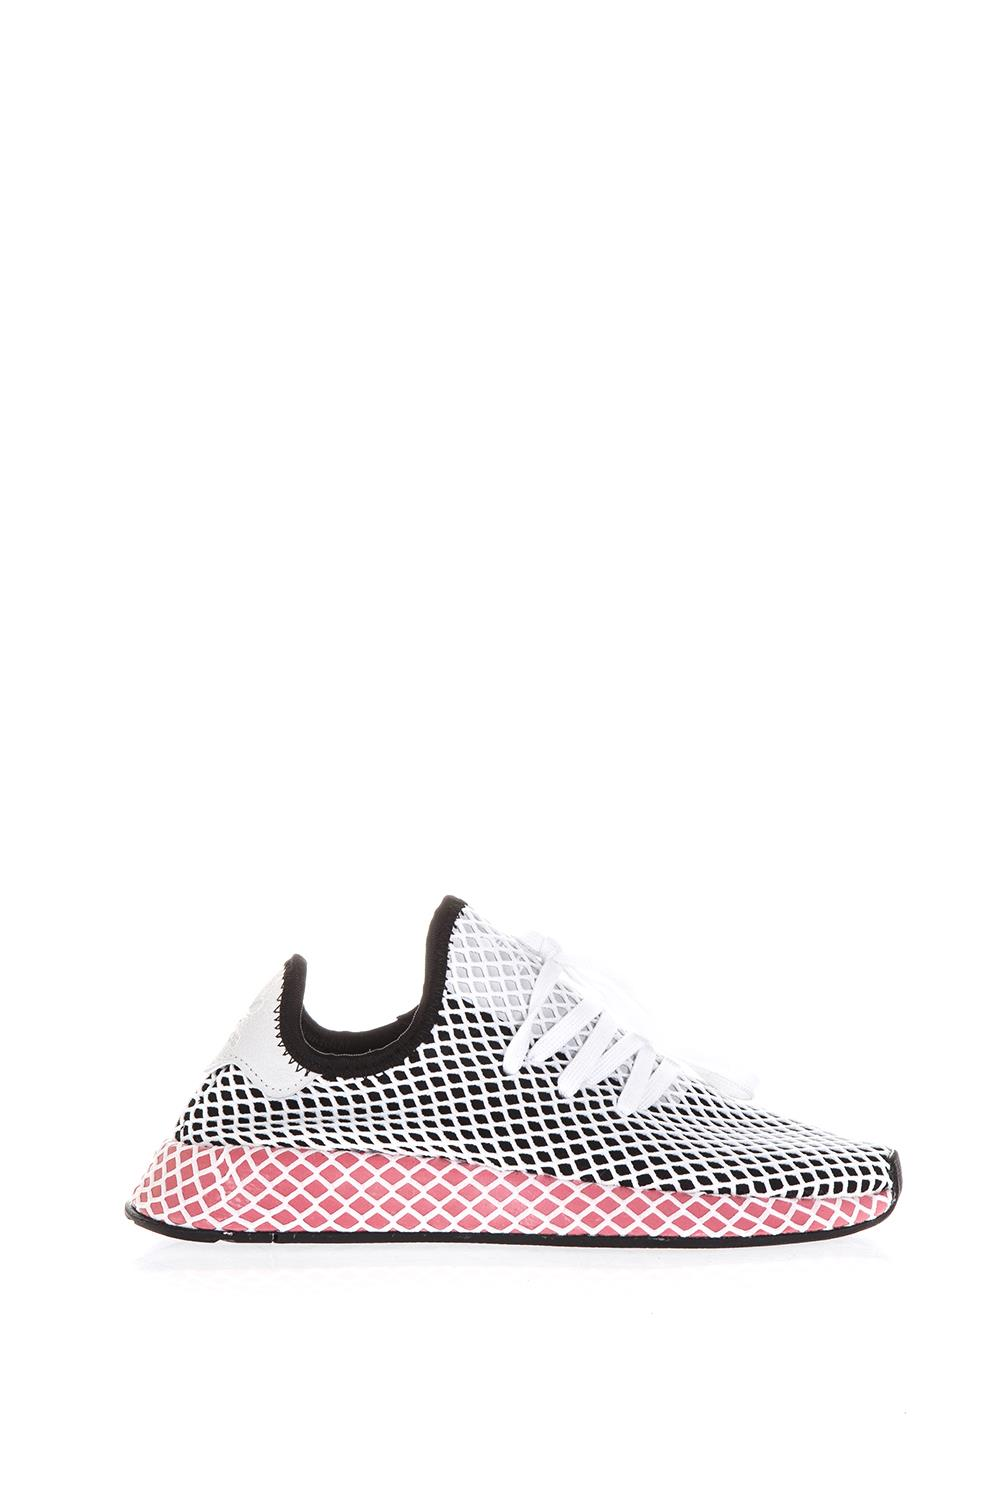 d82ebfeafbb DEERUPT RUNNER SNEAKERS IN FABRIC SS 2018 - ADIDAS ORIGINALS - Boutique  Galiano